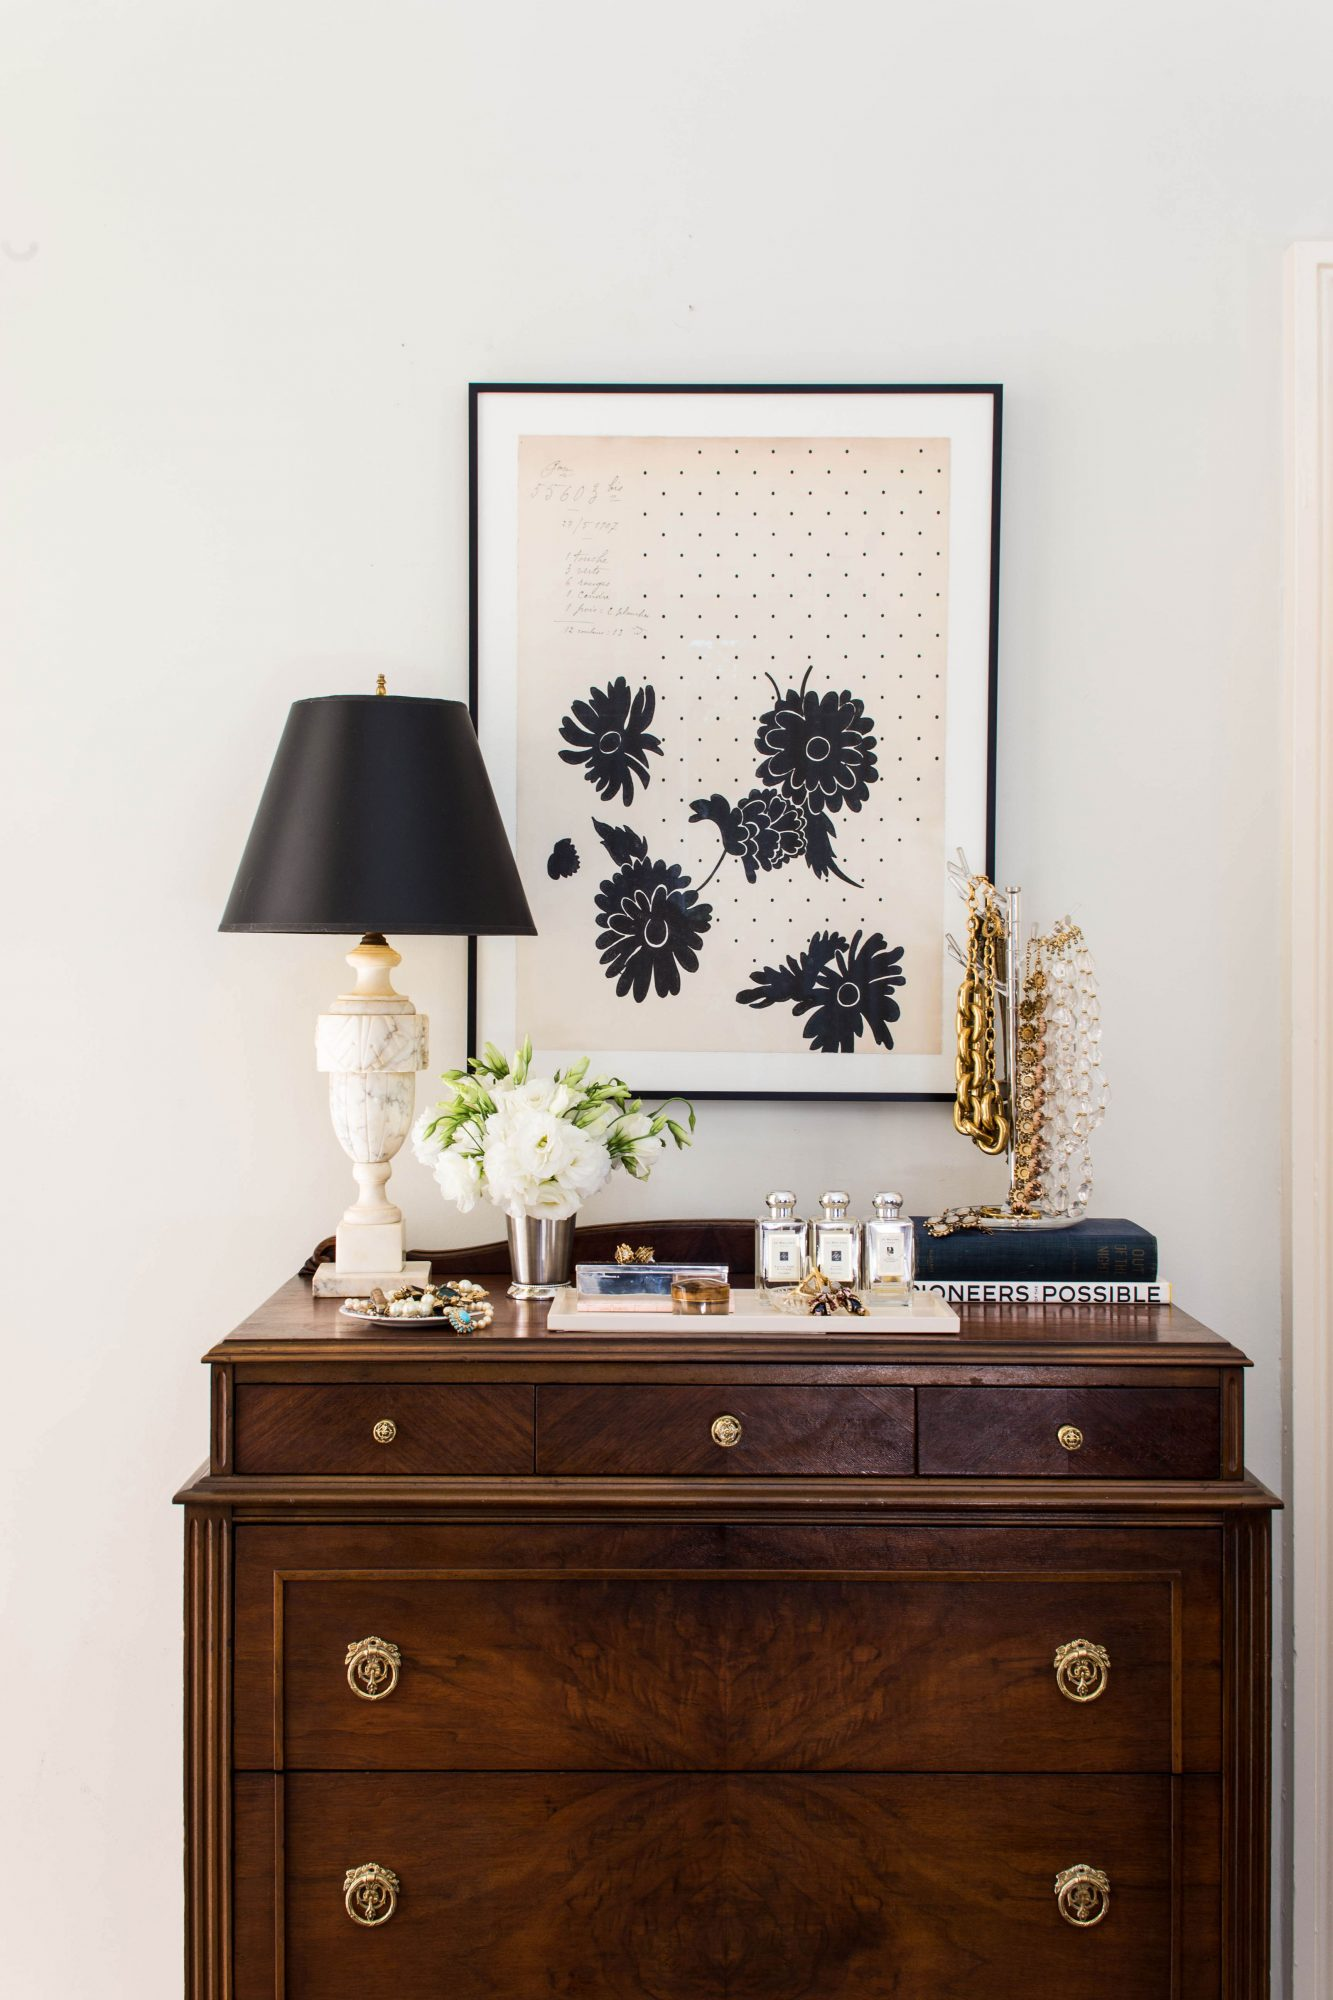 Antique dresser and vanity space with black and white accessories